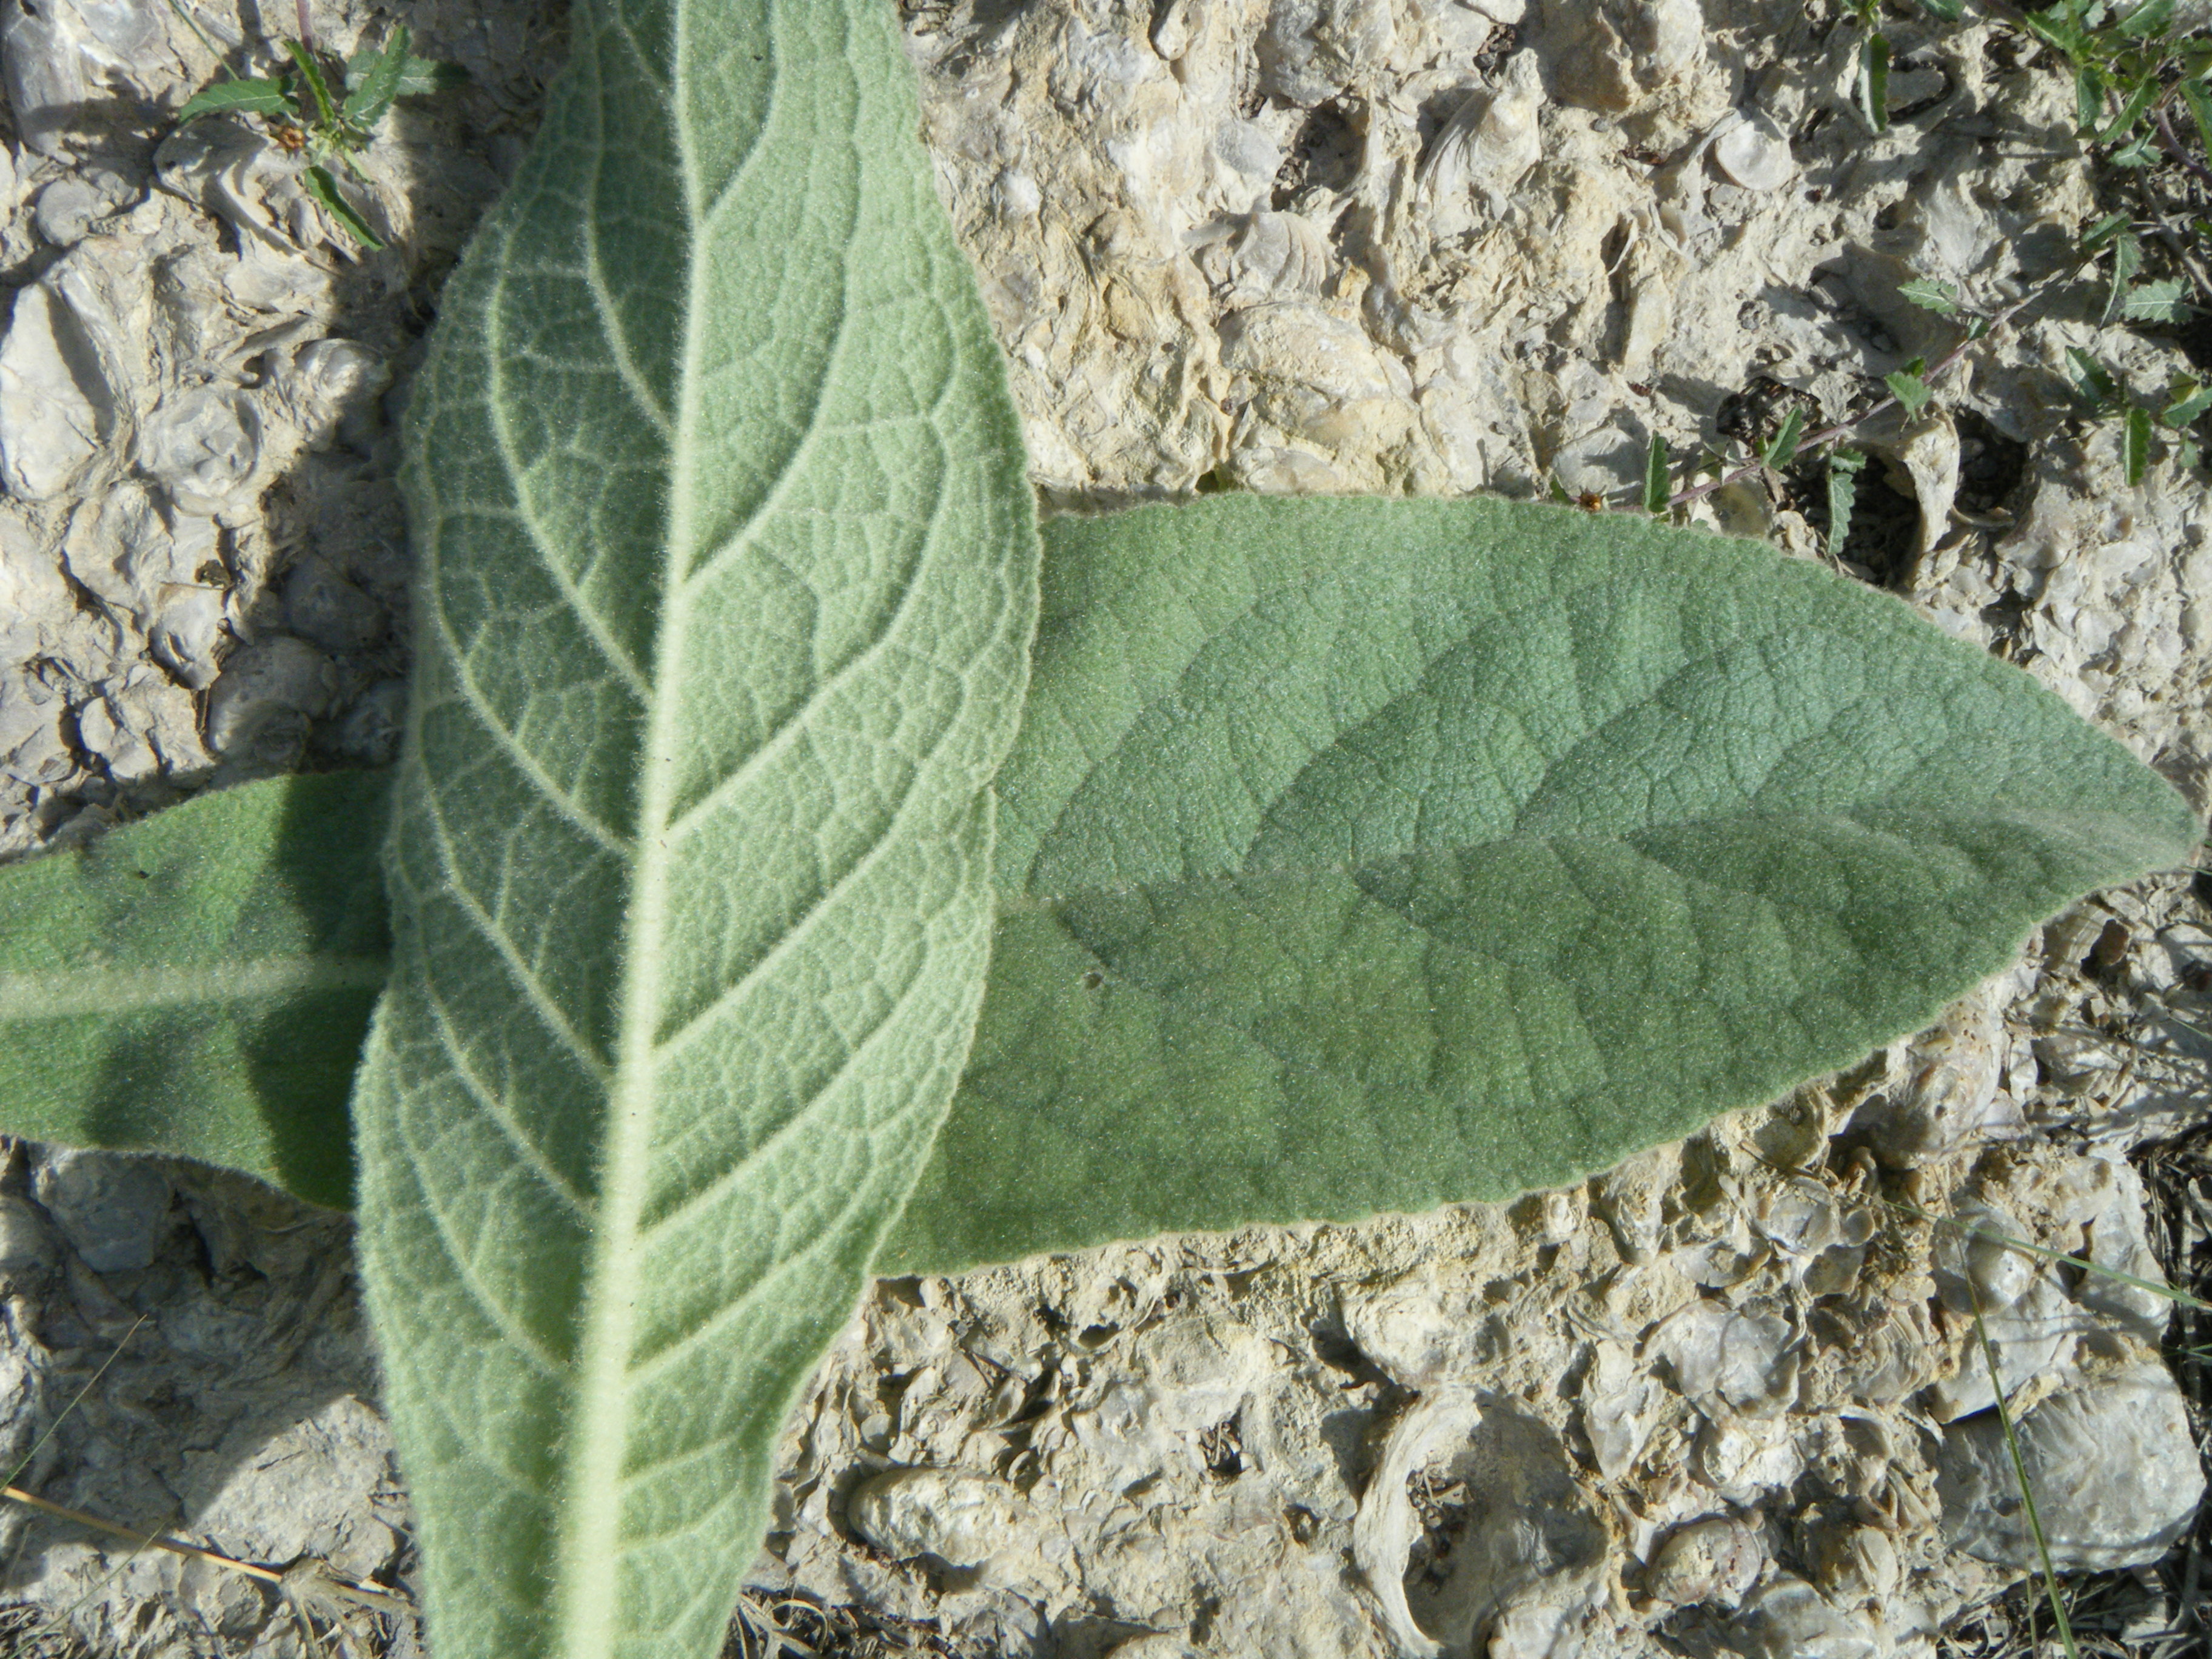 Life Lessons Learned from a Fuzzy Leaf